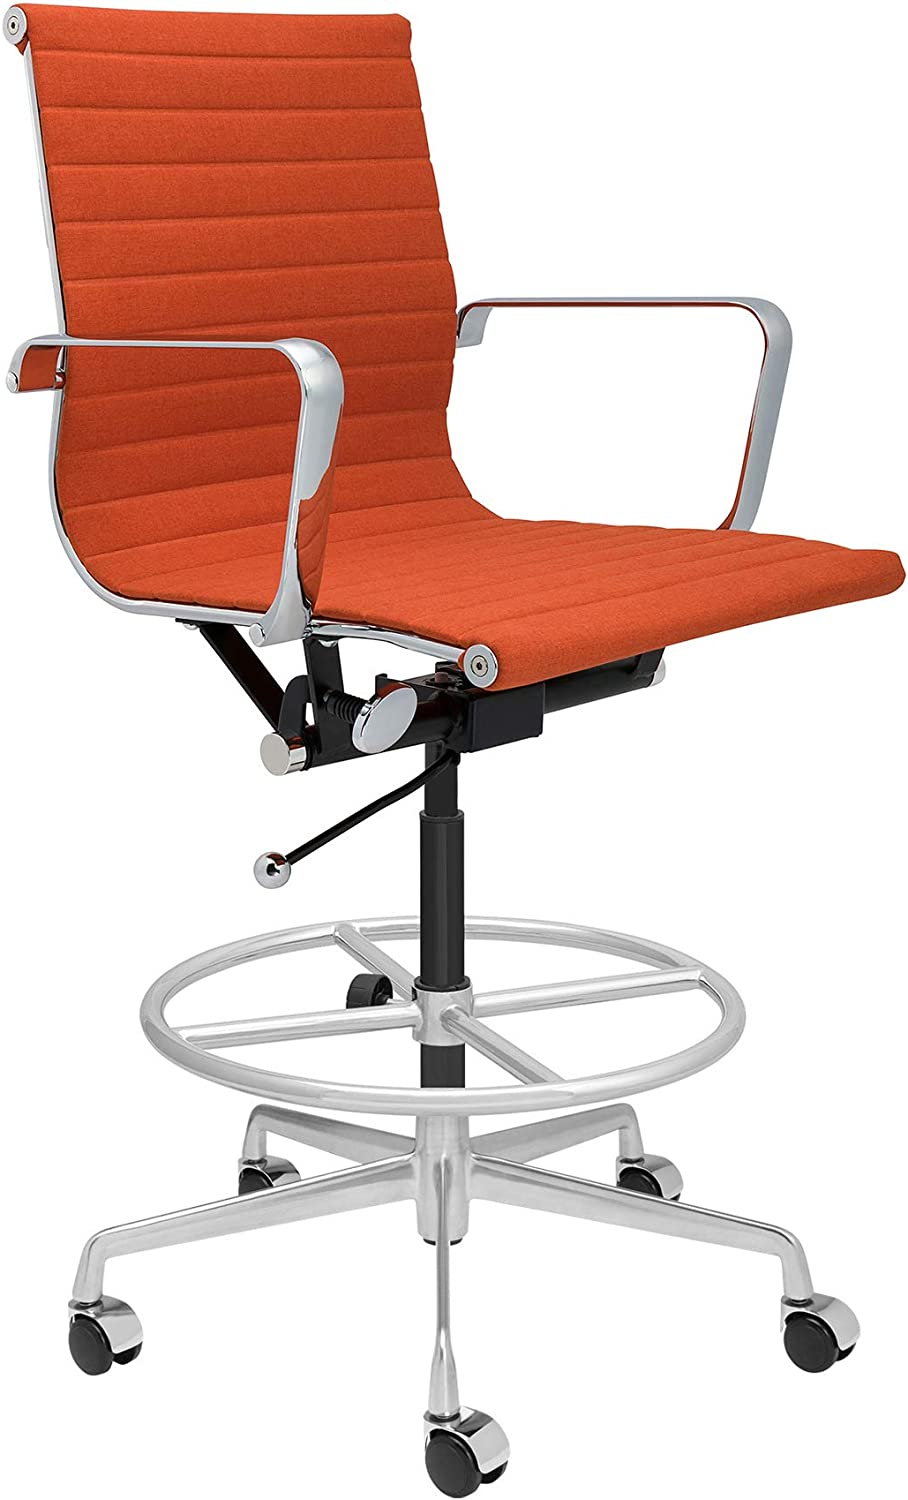 Yellow SOHO Ribbed Drafting Chair Ergonomically Designed and Commercial Grade Draft Height for Standing Desks